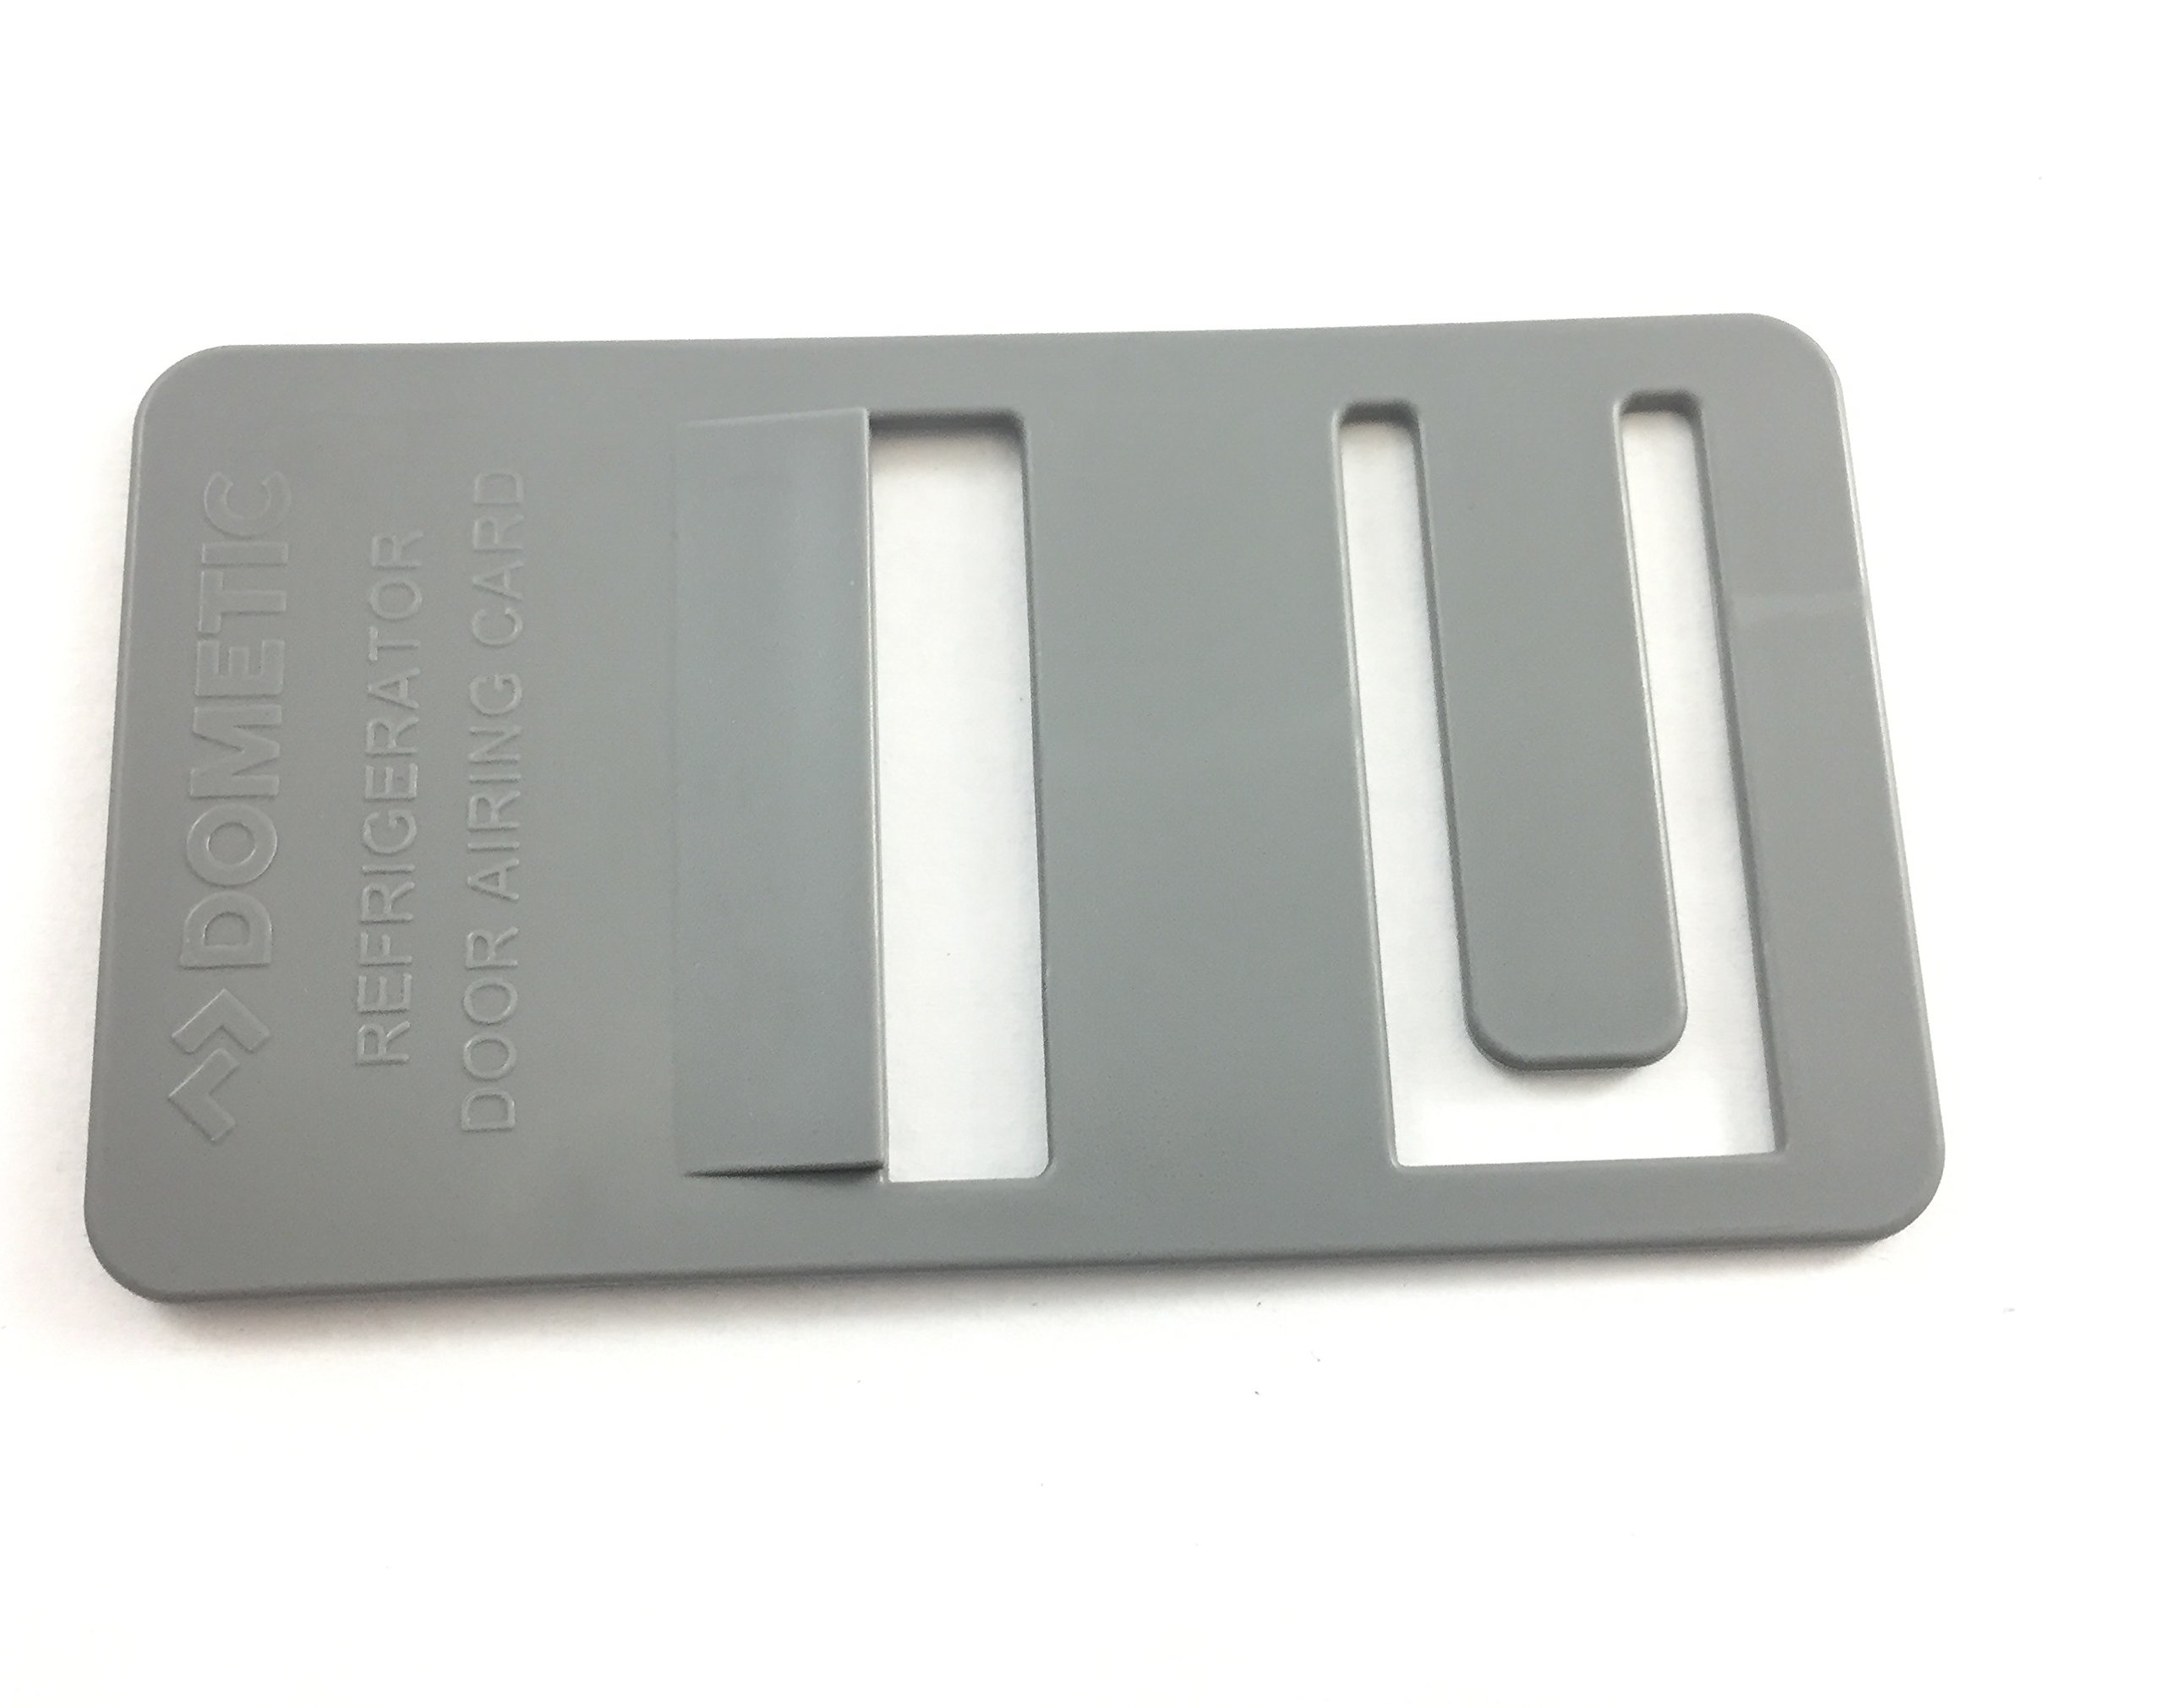 Dometic 3850781026 Grey Refrigerator Airing Device Card